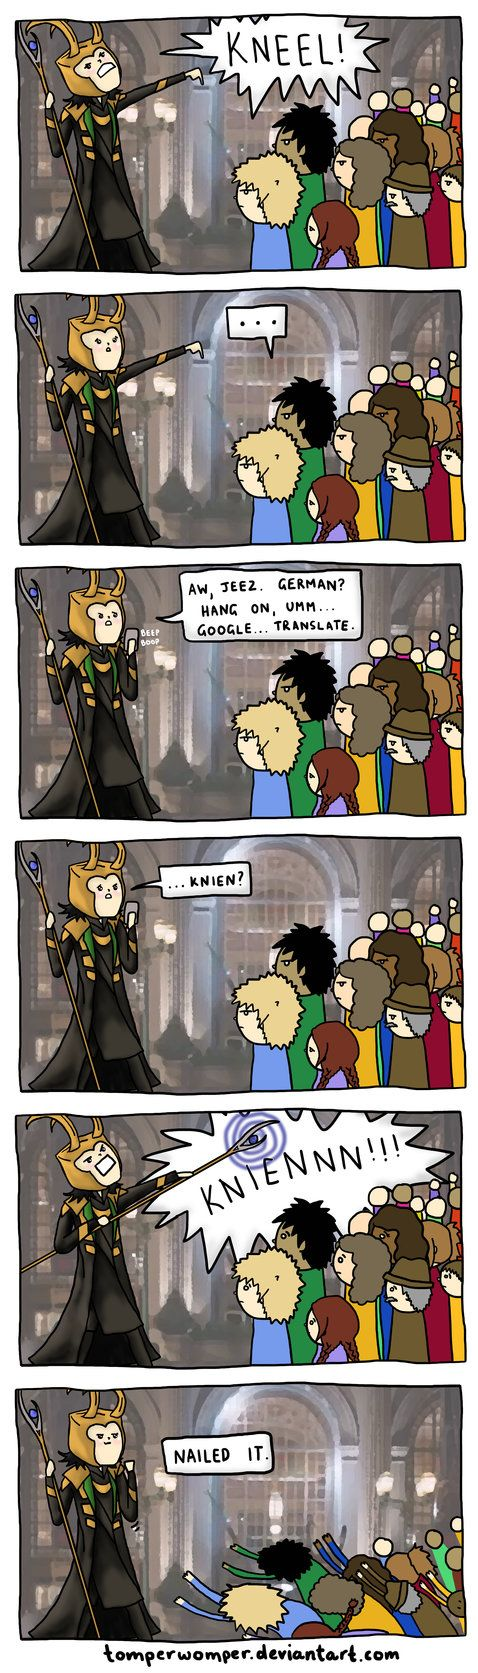 KNEEL by TomperWomper on DeviantArt